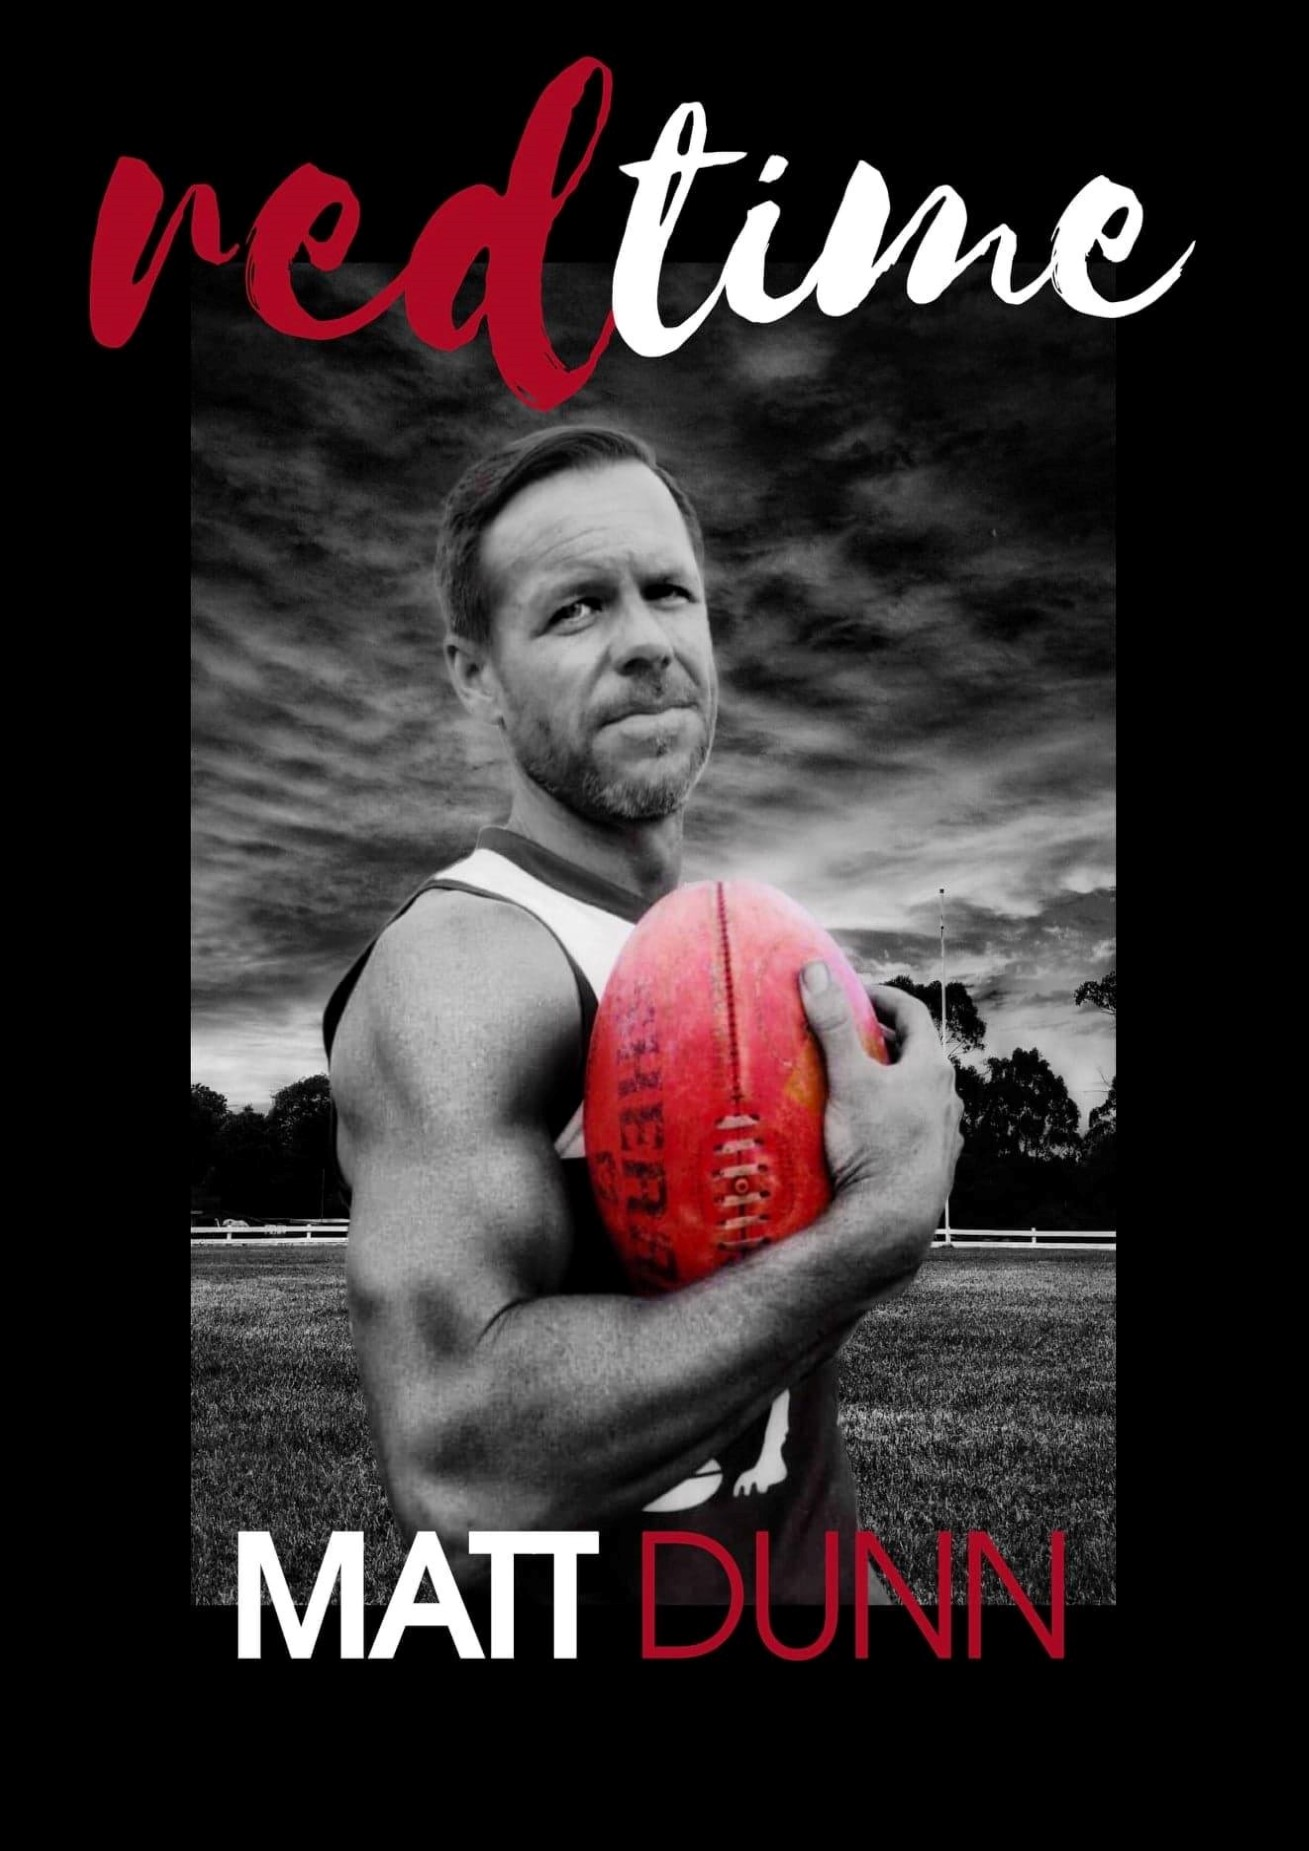 Matt Dunn, Red Time, Publisher Feather Knight Books,Matt Dunn, Red Time, Australian books, Gippsland books, Australian Publishing company, Feather knight Books, buy books, Fiction books, books, novels, best selling novels, best selling books, best sellers, great reads, top books, great books, general fiction, Conspiracy novels, Australian novels, Great authors of 2019, Matt Dunn, Red Time, Crime fiction, sports fiction, football fiction, Aussie Rules football, Family violence books, Great reads, Top reads, New release books 2019, Murder Investigation books, Young adult Fiction, Contemporary fiction, Football, Crime, Action, Trauma, Domestic Violence, Fiction, Australia, grand final, AFL, BBC, Ed Sheerin, Jimi Hendrix, Jimmy Barnes, AC/DC, rock 'n' roll, Ed Sheerin, heartbroken, guitar, bullying, Corruption, Domestic Violence, Murder, Conspiracy, Footscray, MCG, 2016, Essendon, Gippsland, Herald Sun, sex, London, new author, Marcus Bontempelli, Luke Beveridge, Western Bulldogs, AC/DC, Monash, Federal election, Liberal, Labor, politics, same sex, footy, country victoria, Wilsons Promontory, Liam Picken, Tom Boyd, Blood, red, romantic fiction, crime fiction, crime fiction 2019, dodgy, ABC Gippsland, Monash electorate, Russell Broadbent, media advisor, Australian Parliament, Jane Harper, Honey Brown, the dry, Australian fiction, country footy, suburban footballer, country footballer, ABC grandstand, Leongatha, Meeniyan, Fish Creek, Foster, Foster Mirror, South Gippsland, South Gippsland Council, Gillon Mclachlan, Gil Mclachlan, Bronwyn Bishop, helicopter, rort, Clive Palmer, Fraser Anning, Pauline Hanson, racism, the footy show, AFL 360, hamstring injury, ACL, Port Adelaide, Freemantle, Swans, Collingwood, Eddie McGuire, Triple M, West Coast, Eagles, Hawks, Hawthorn, Buddy Franklin, Gary Abblett, Geelong Football, Rising Star, Brownlow, Australian author, Matt Dunn, Feather Knight, Australian boxing, romance novel, lesbian, Alberton Football League, Wonthaggi, kindle fiction, new author, John Silvester, Andrew Rule, Underbelly, Pink songs, Bali holiday, sexy men, movie hero, Gippsland author, top 10 books, the Bachelor